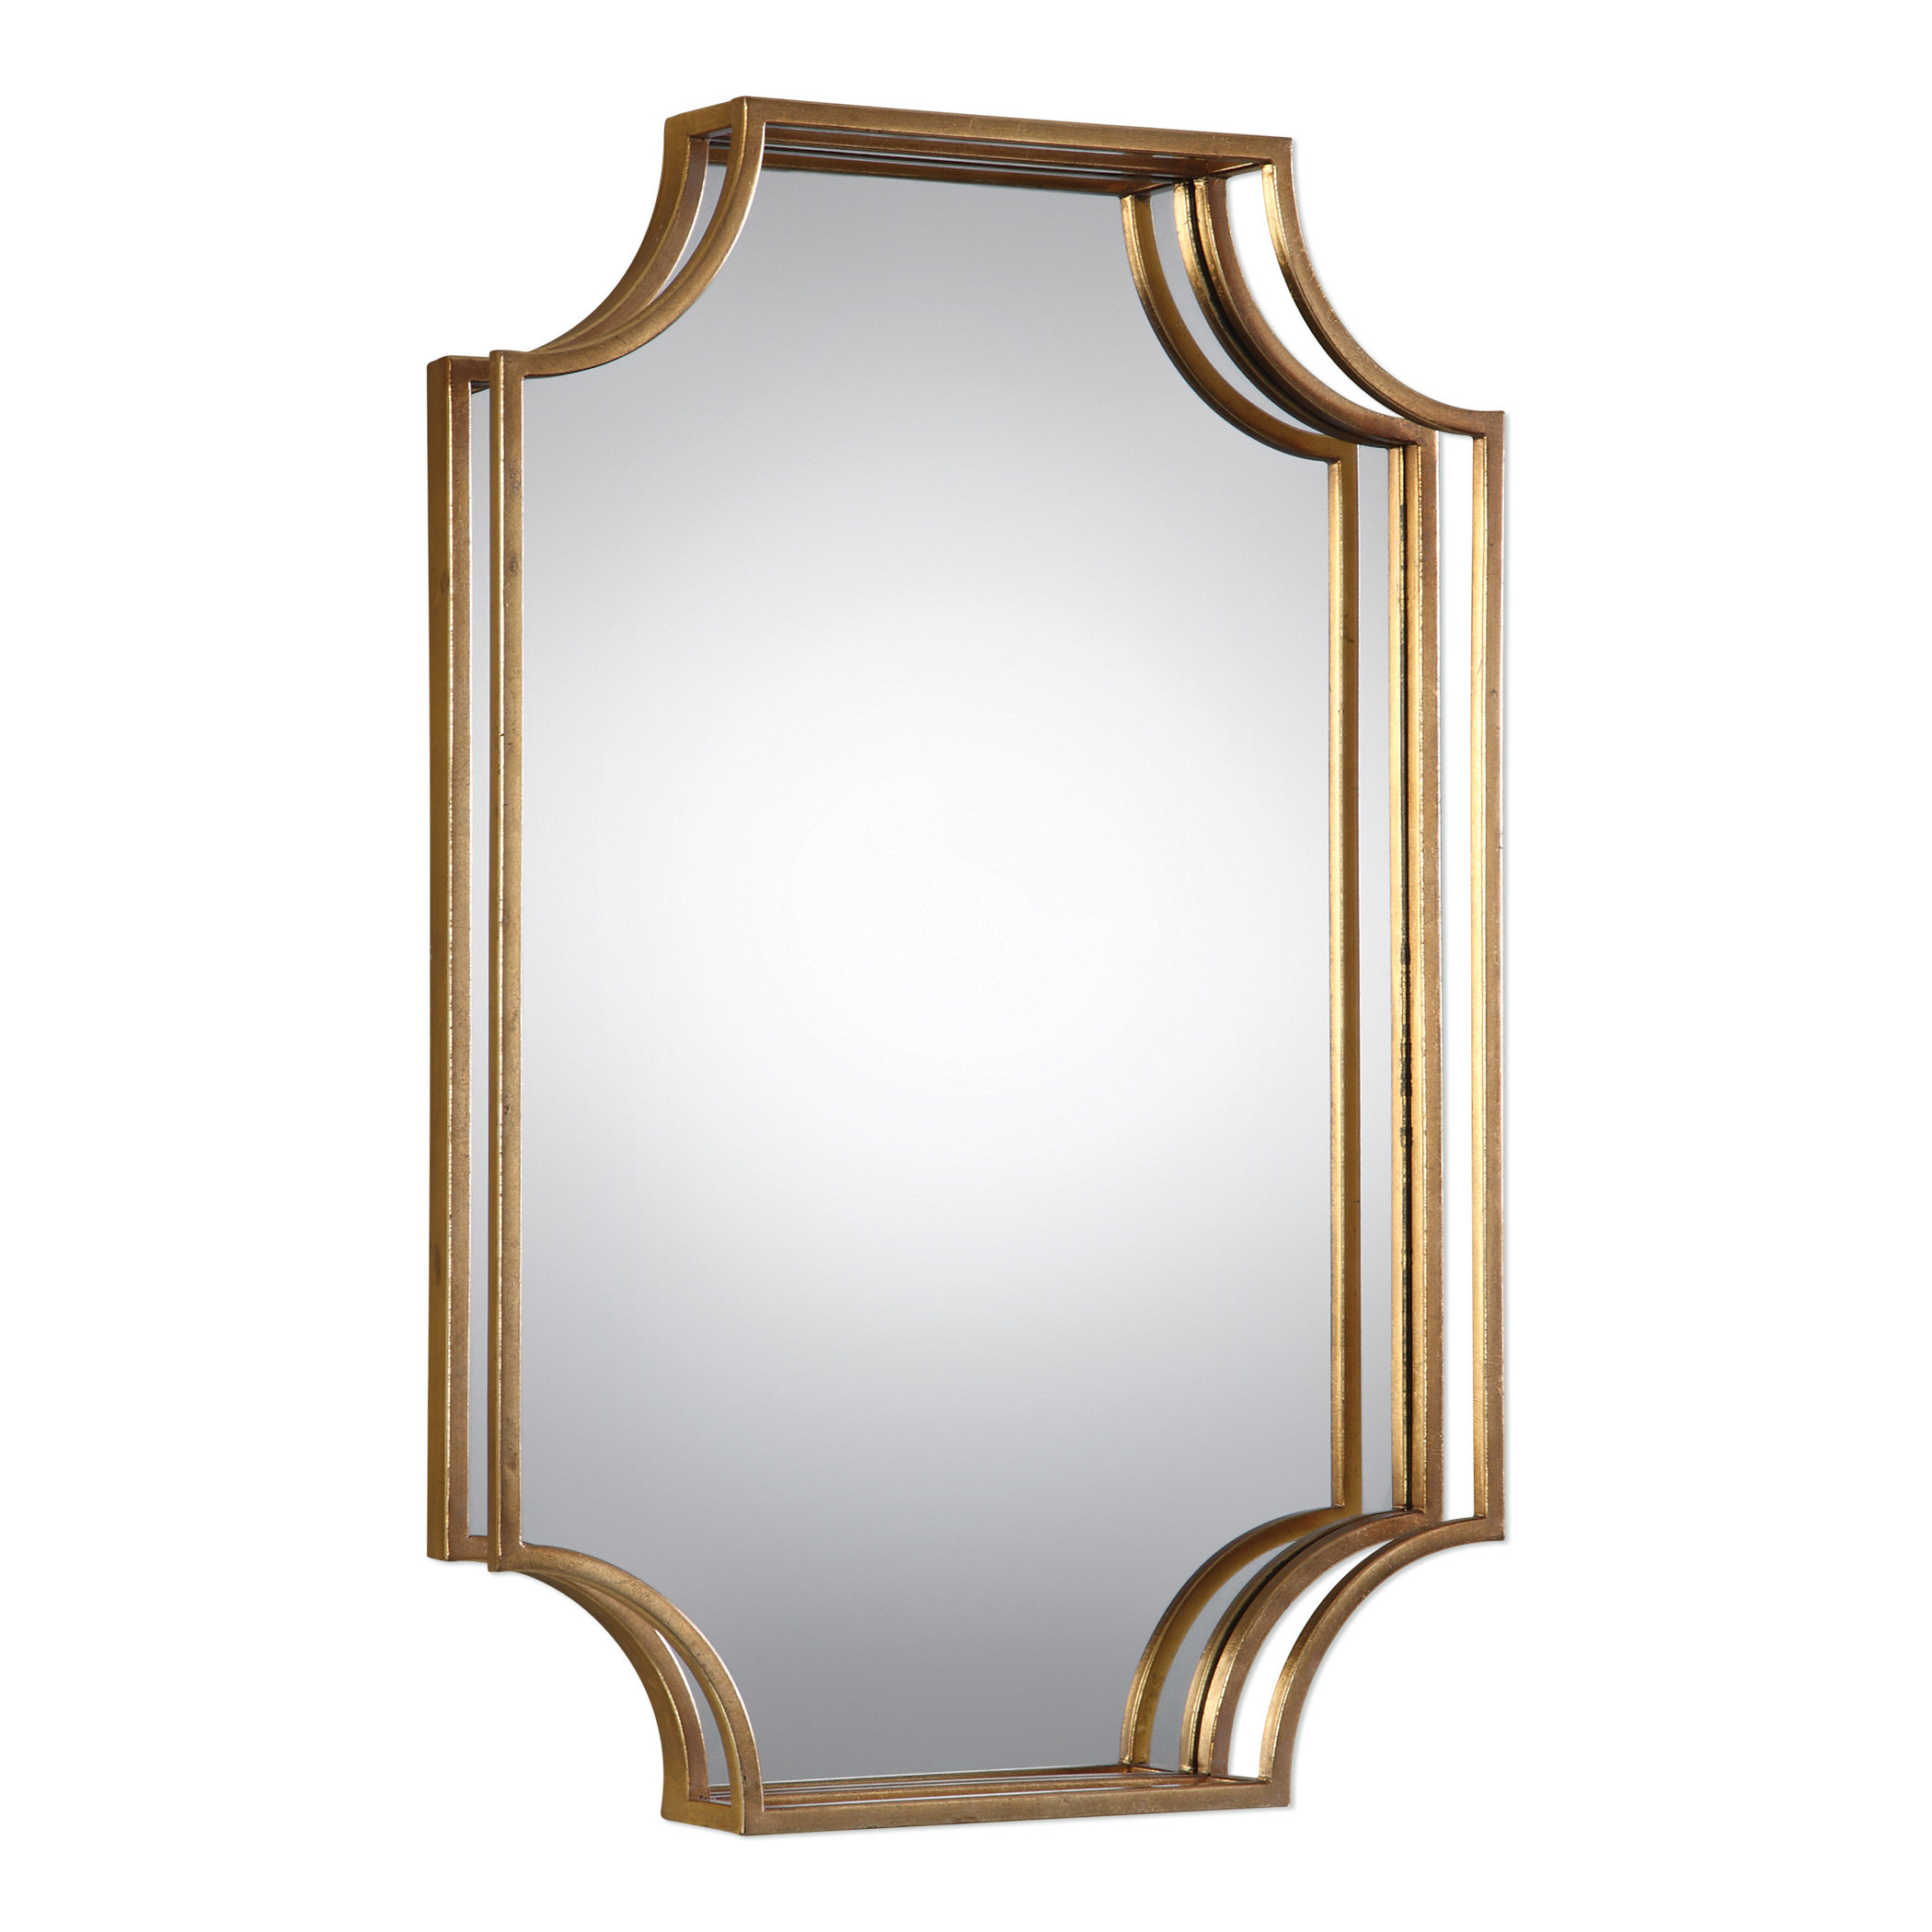 Dariel Tall Arched Scalloped Wall Mirrors In Current Vansickle Metal Accent Wall Mirror (View 11 of 20)